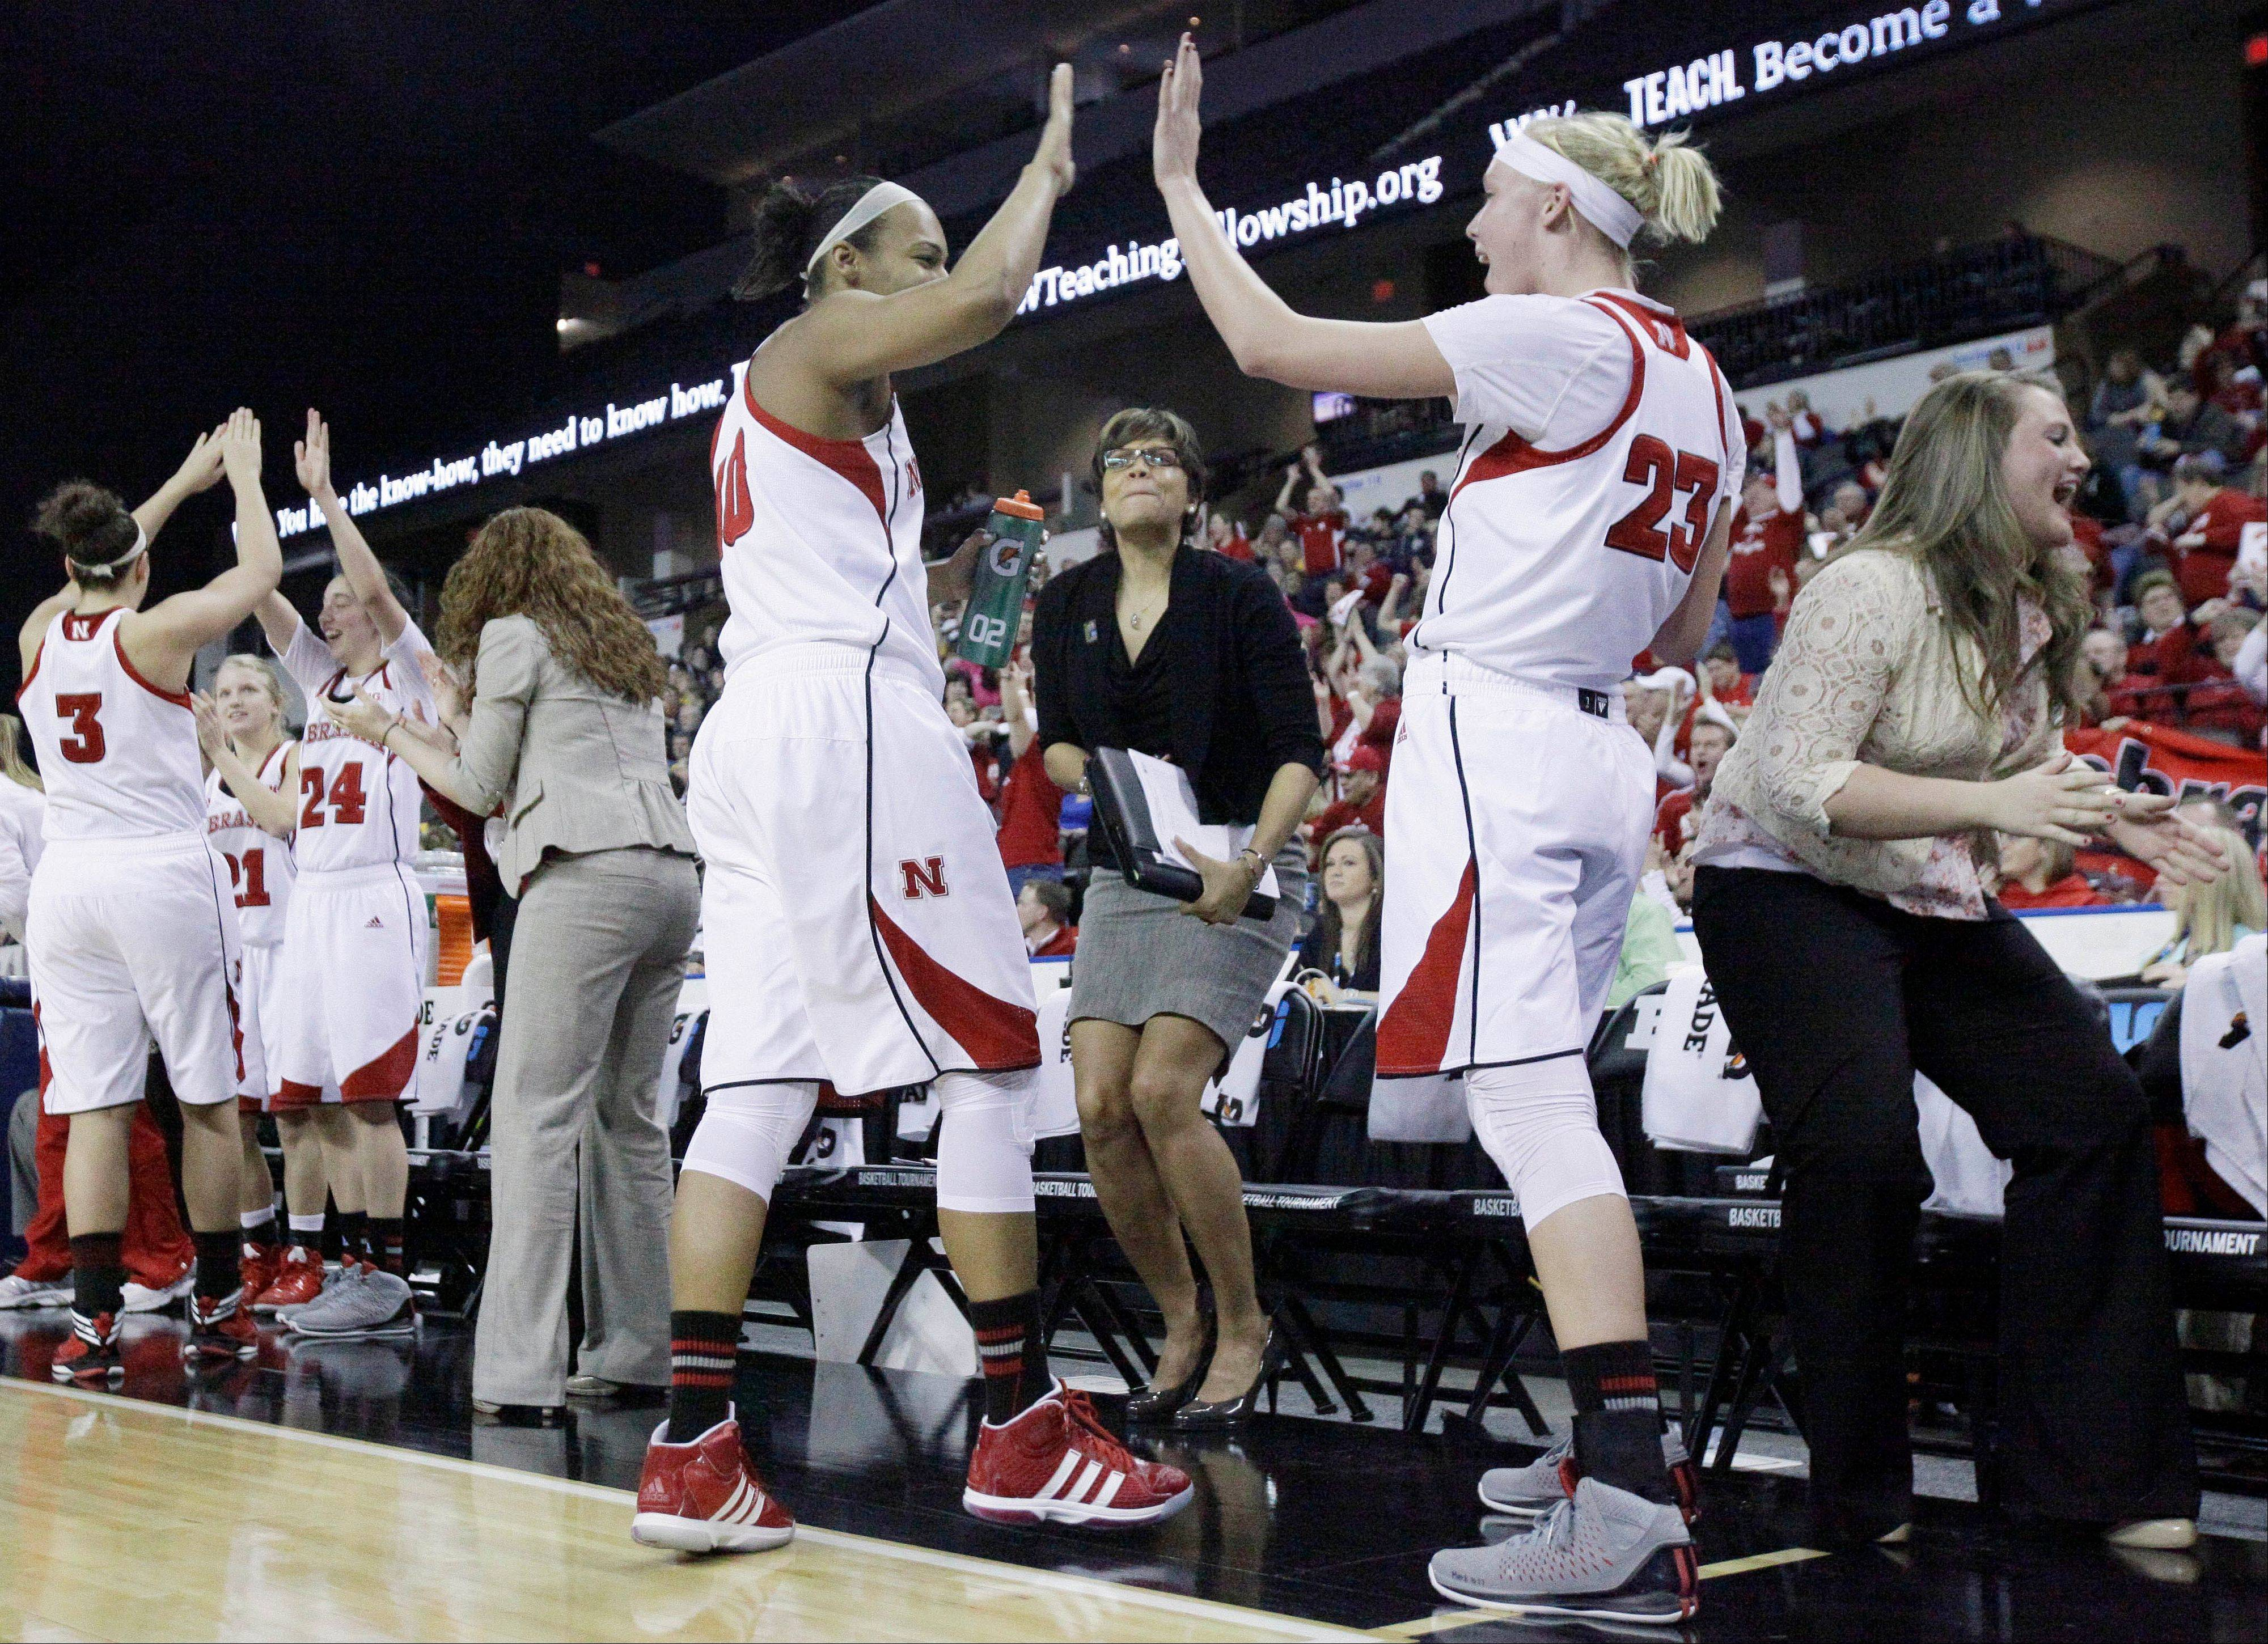 Nebraska players and staff celebrate after guard Brandi Jeffery, not pictured, scored during the second half of an NCAA college basketball game against Iowa in the Big Ten Conference tournament in Hoffman Estates, Ill., on Friday, March 8, 2013. Nebraska won 76-61. (AP Photo/Nam Y. Huh)